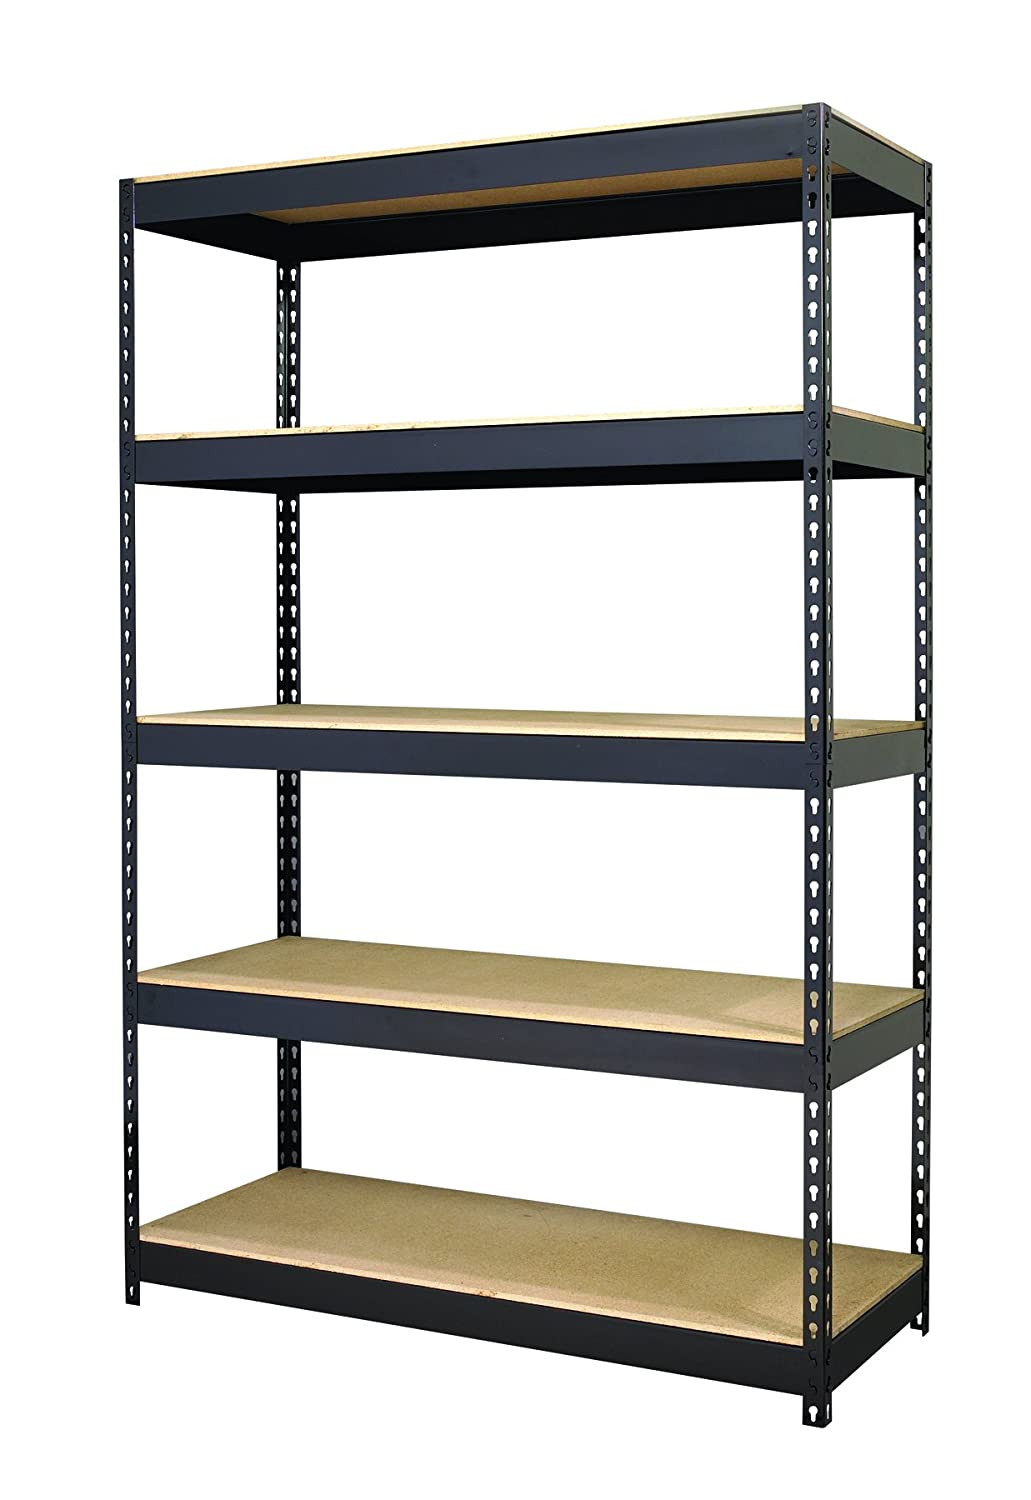 Hirsh Industries Office Dimensions Riveted Steel Shelving 5-Shelf Unit, 48